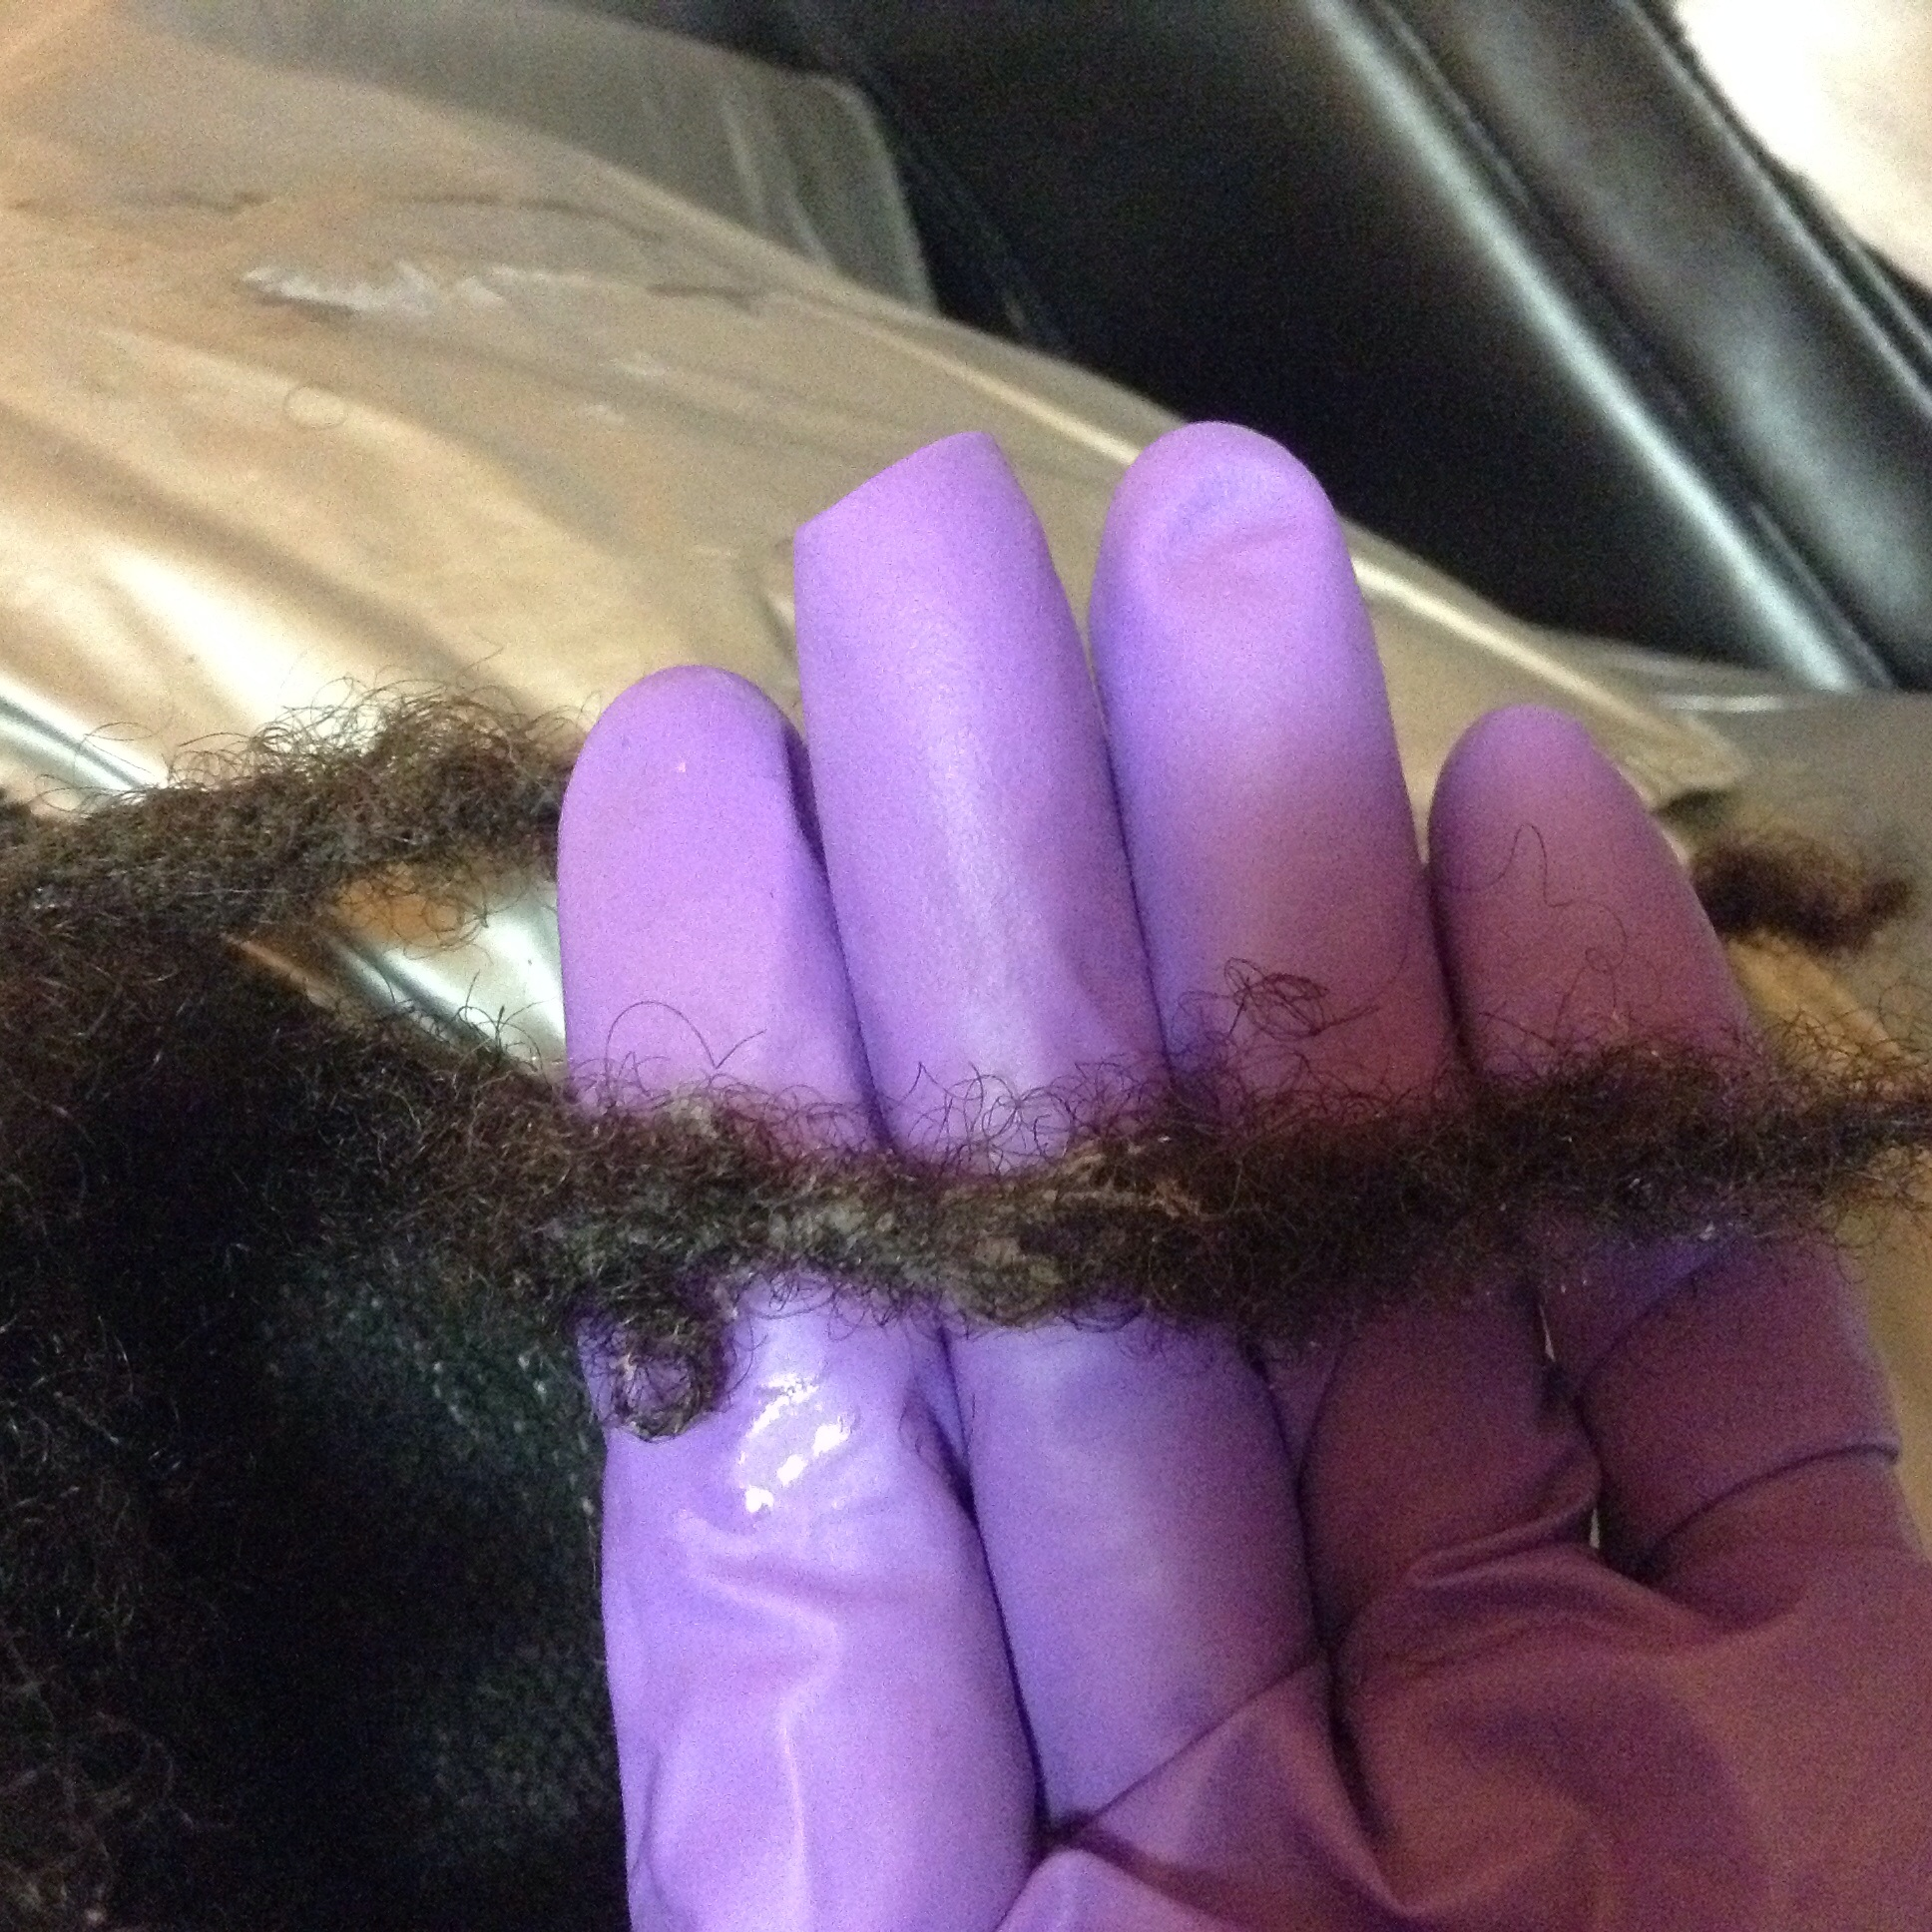 Over tightening causes hair to coil extremely tight and is a prime location for lint to get trapped.  ©2015